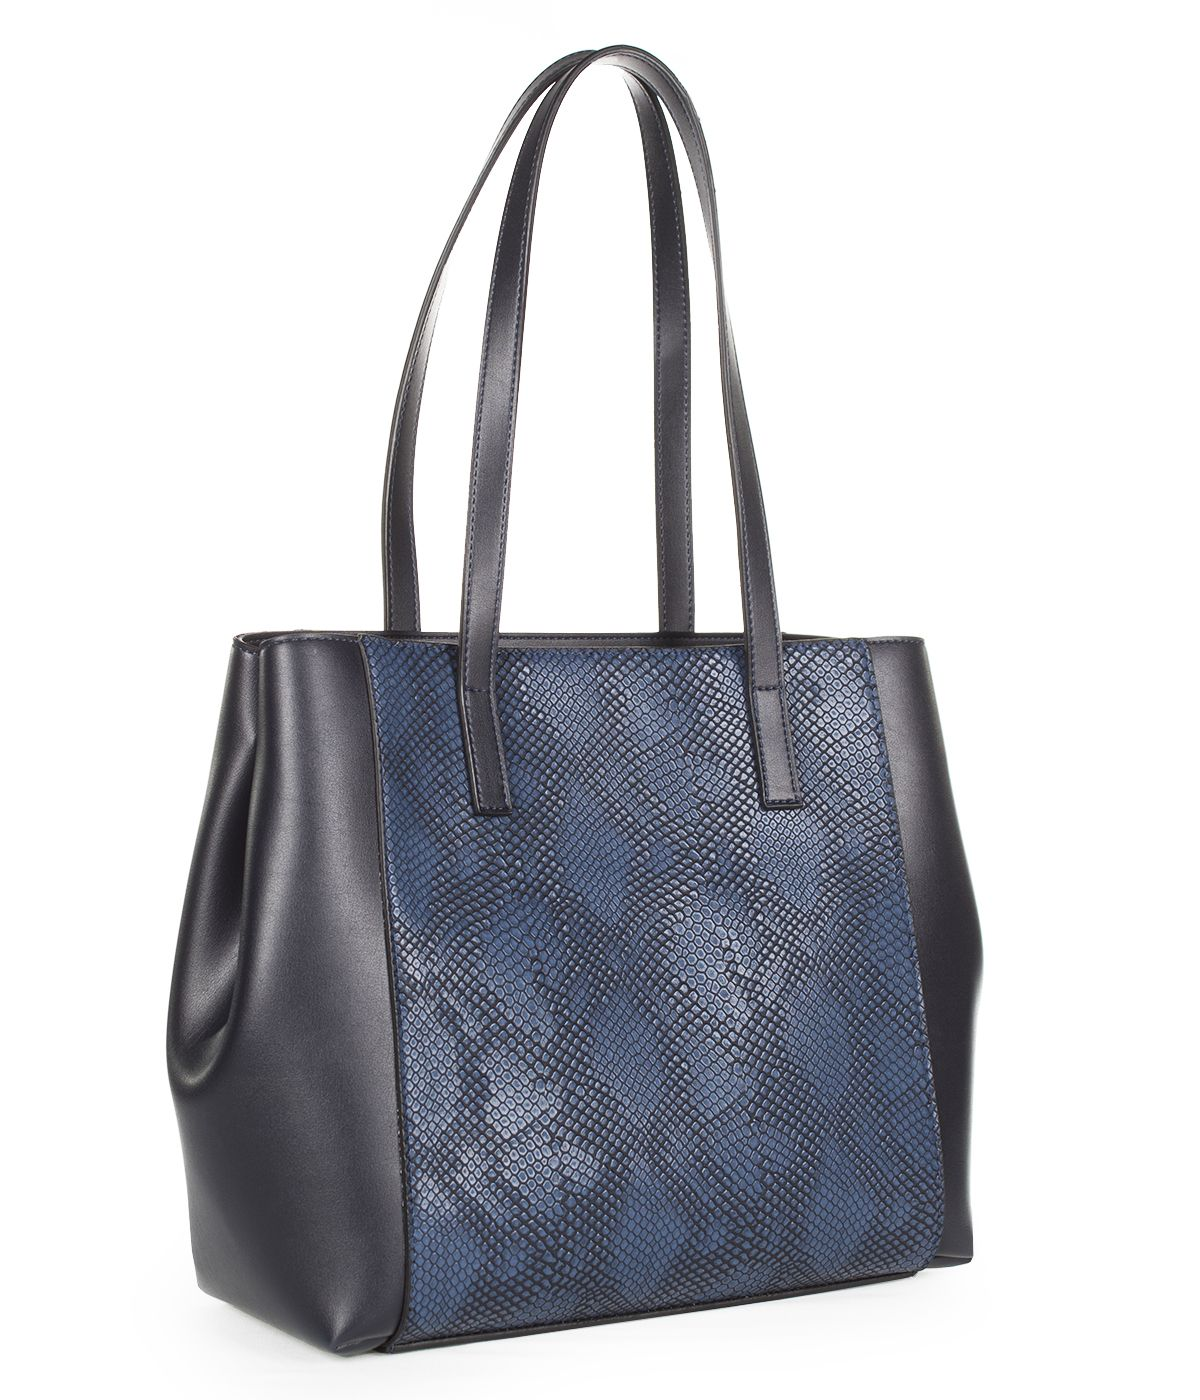 LEATHER BLUE BAG WITH SNAKE SKIN IMITATION